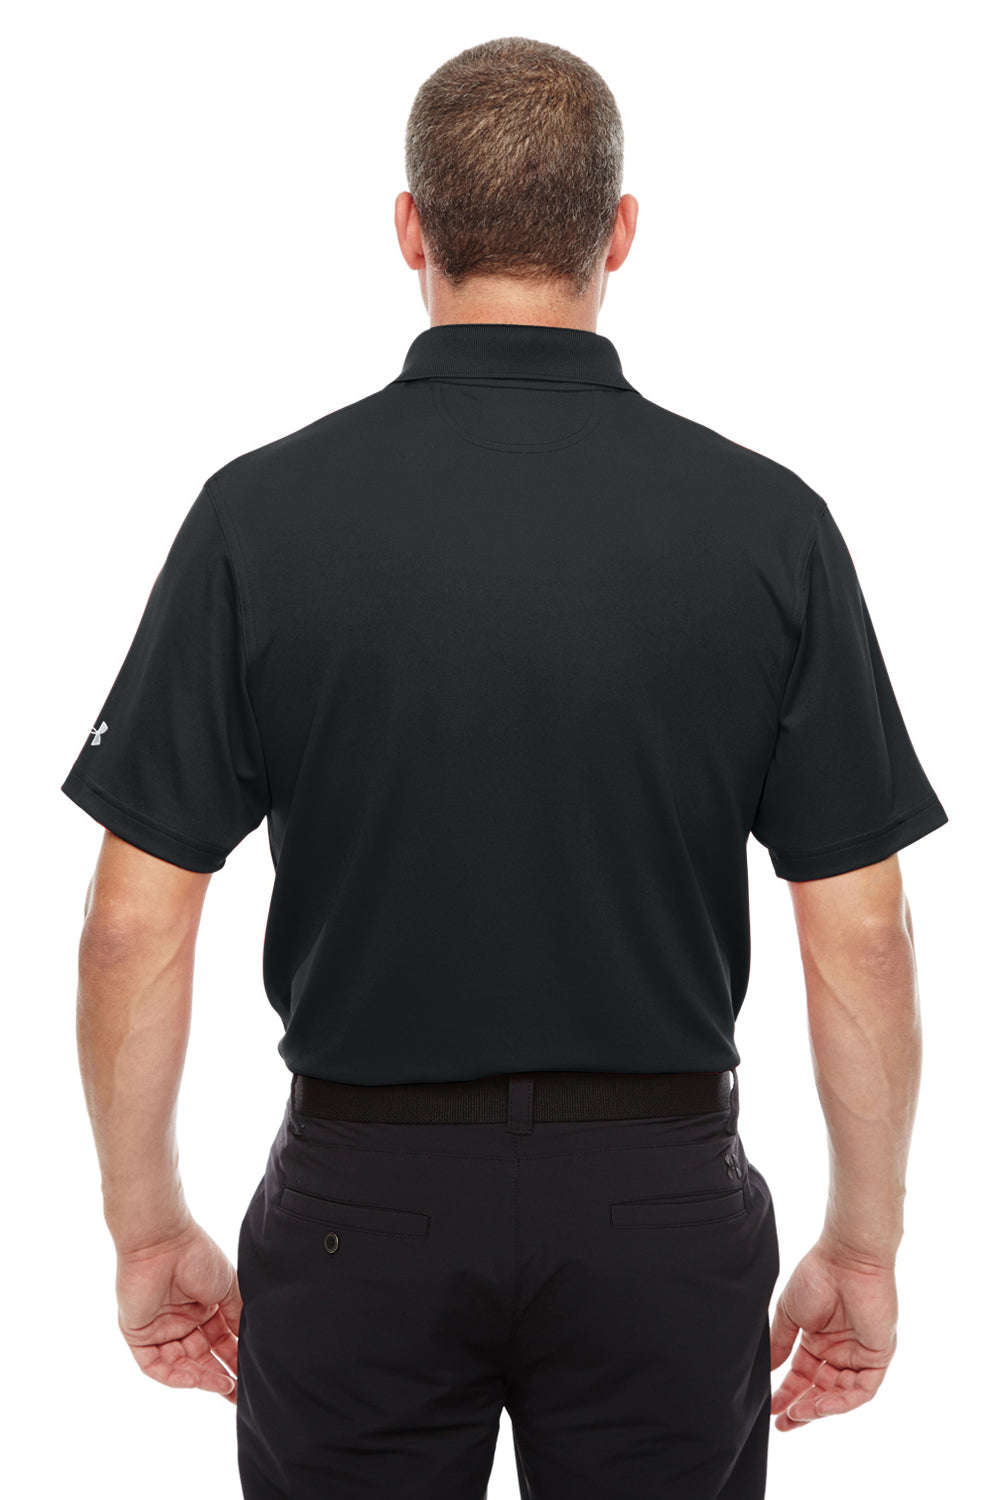 Under Armour 1261172 Mens Corp Performance Snag Resistant Short Sleeve Polo Shirt Black Back